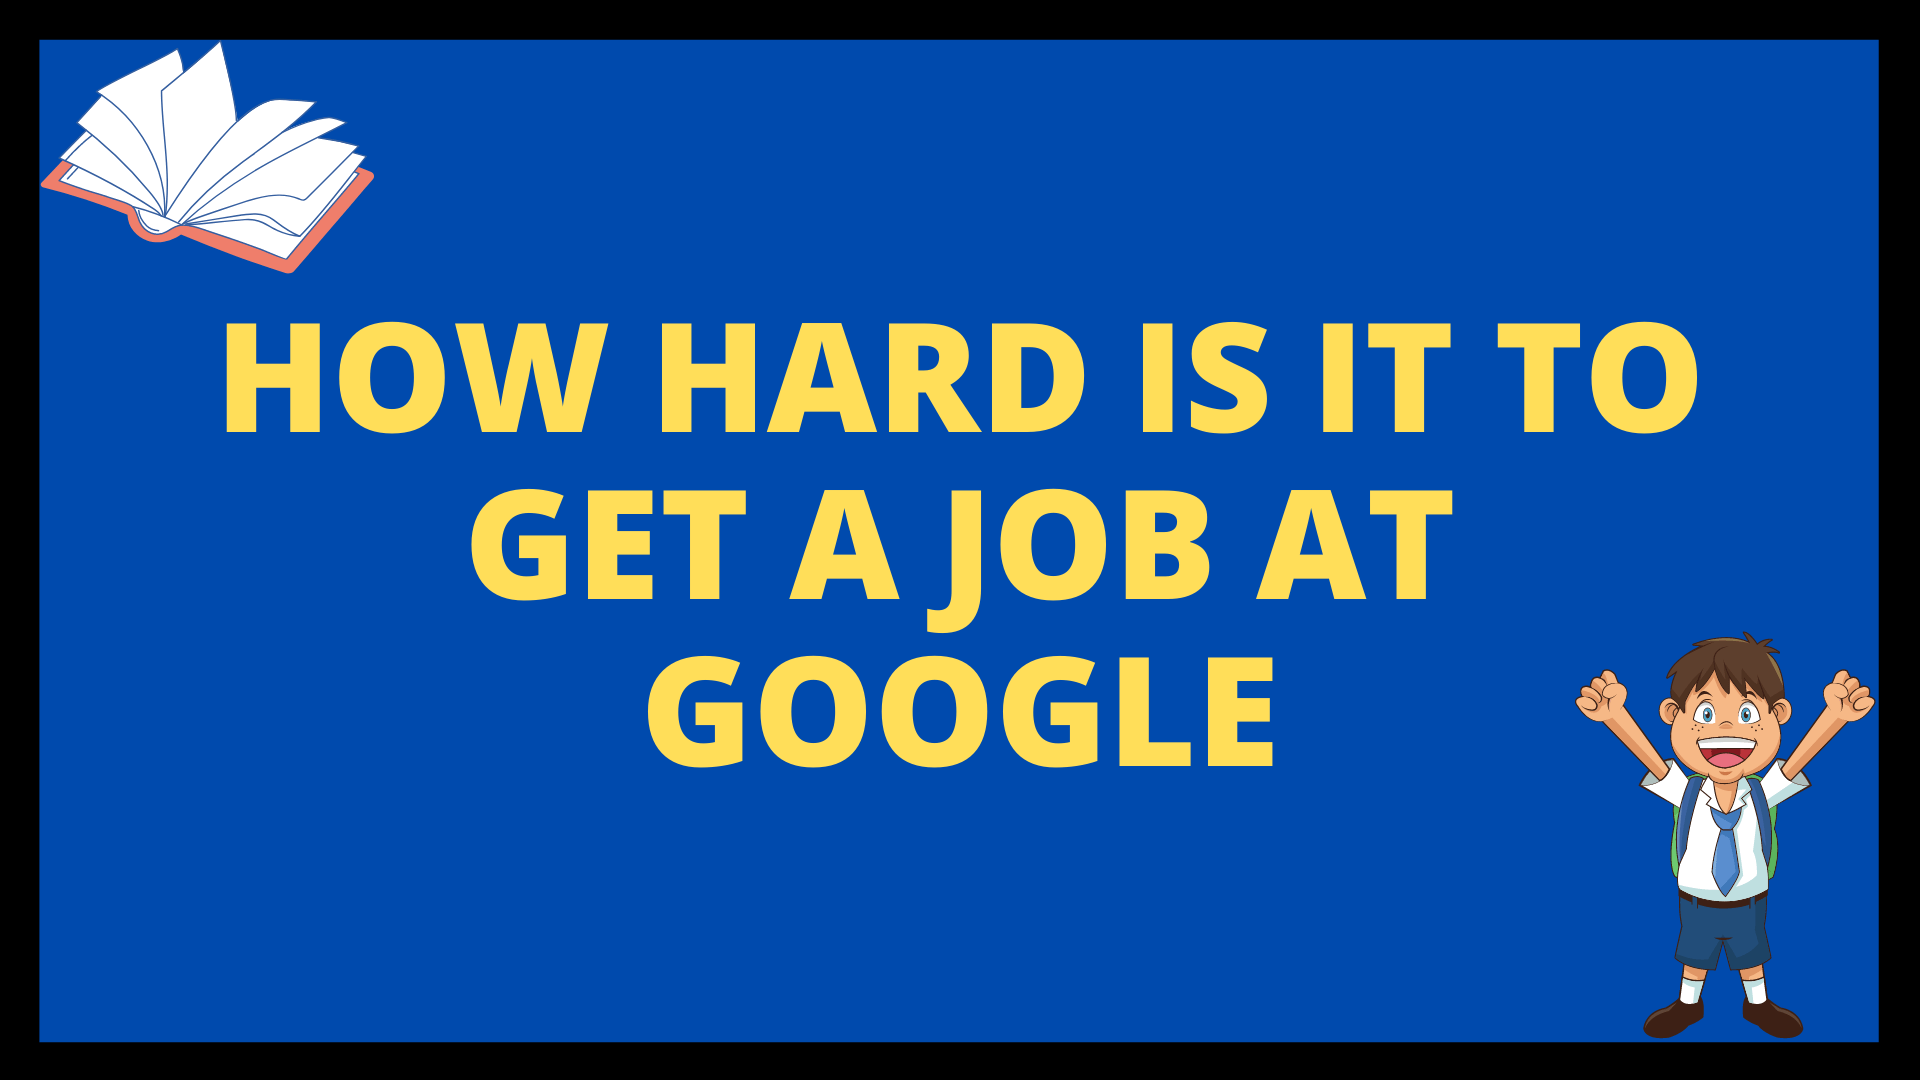 How Hard is it to get a Job at Google